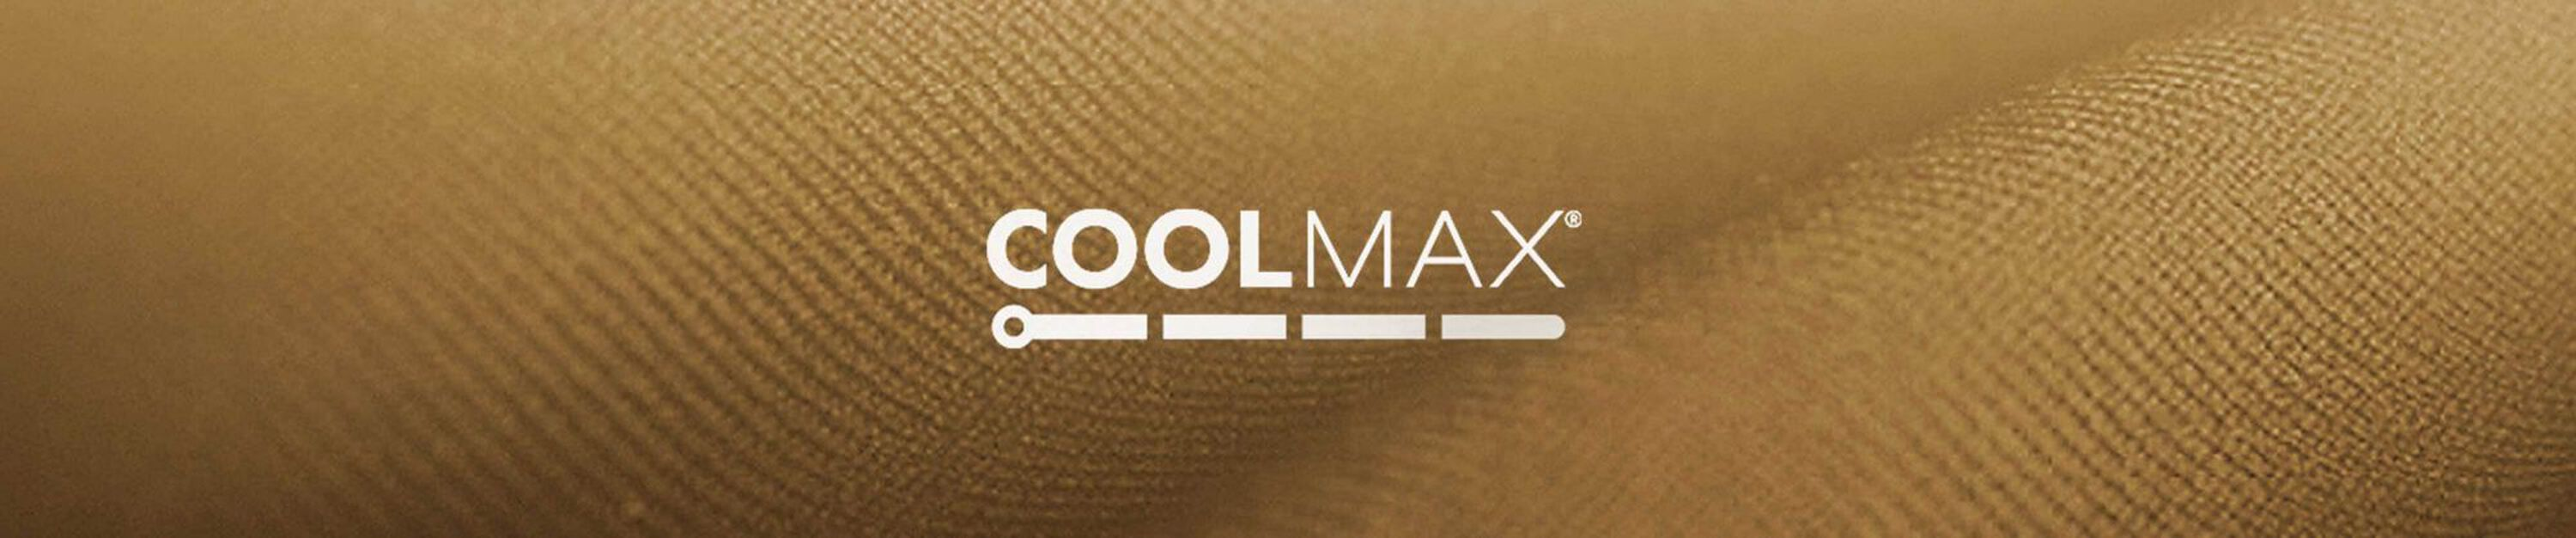 cool max banner